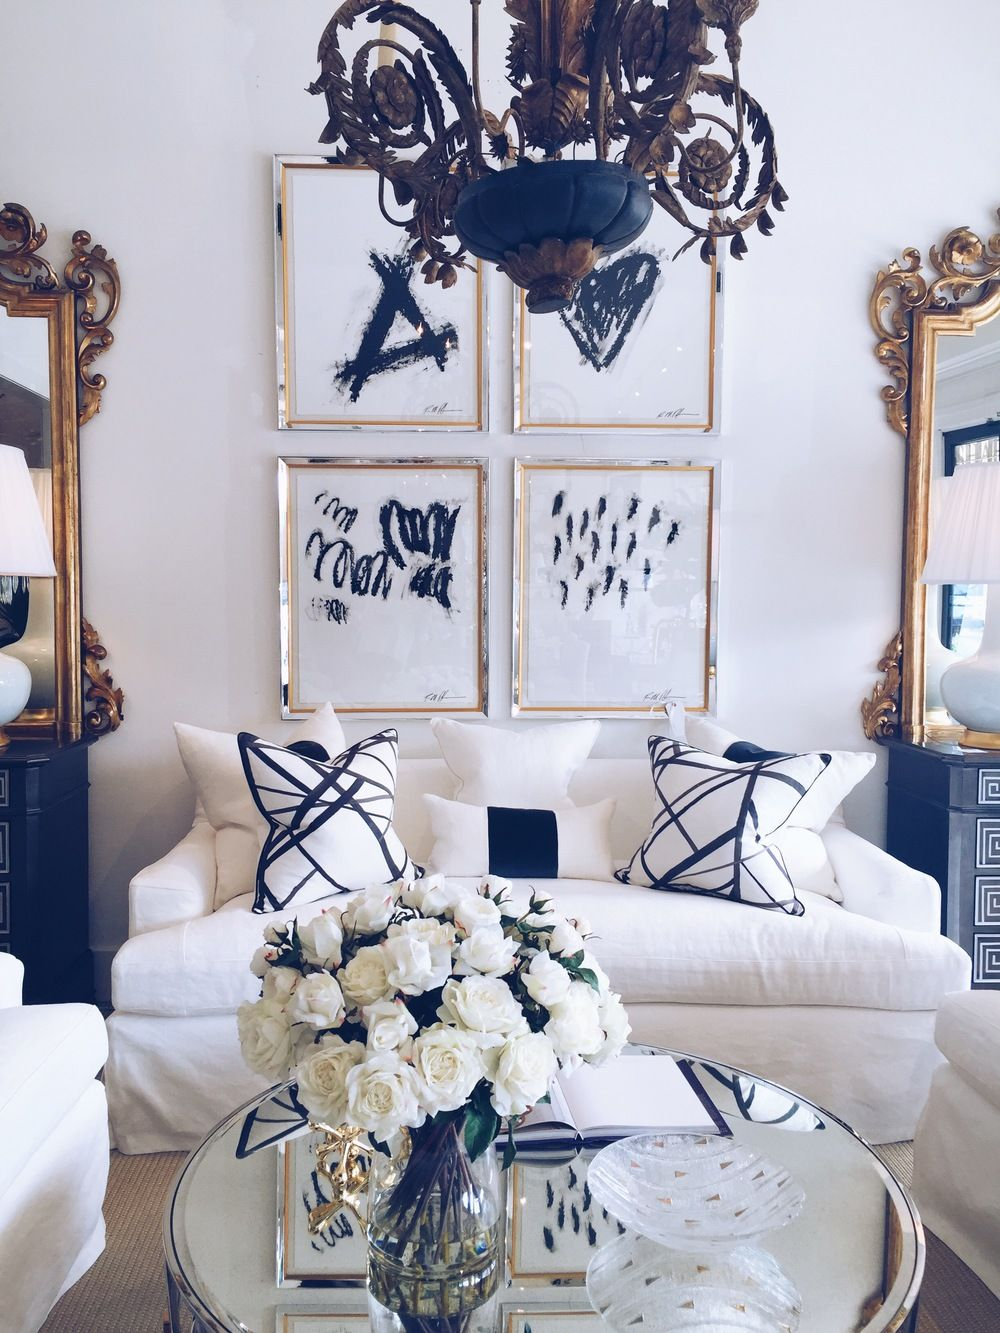 Chic Boutique: Shabby Slips Houston | Shabby, Boutique and Interiors